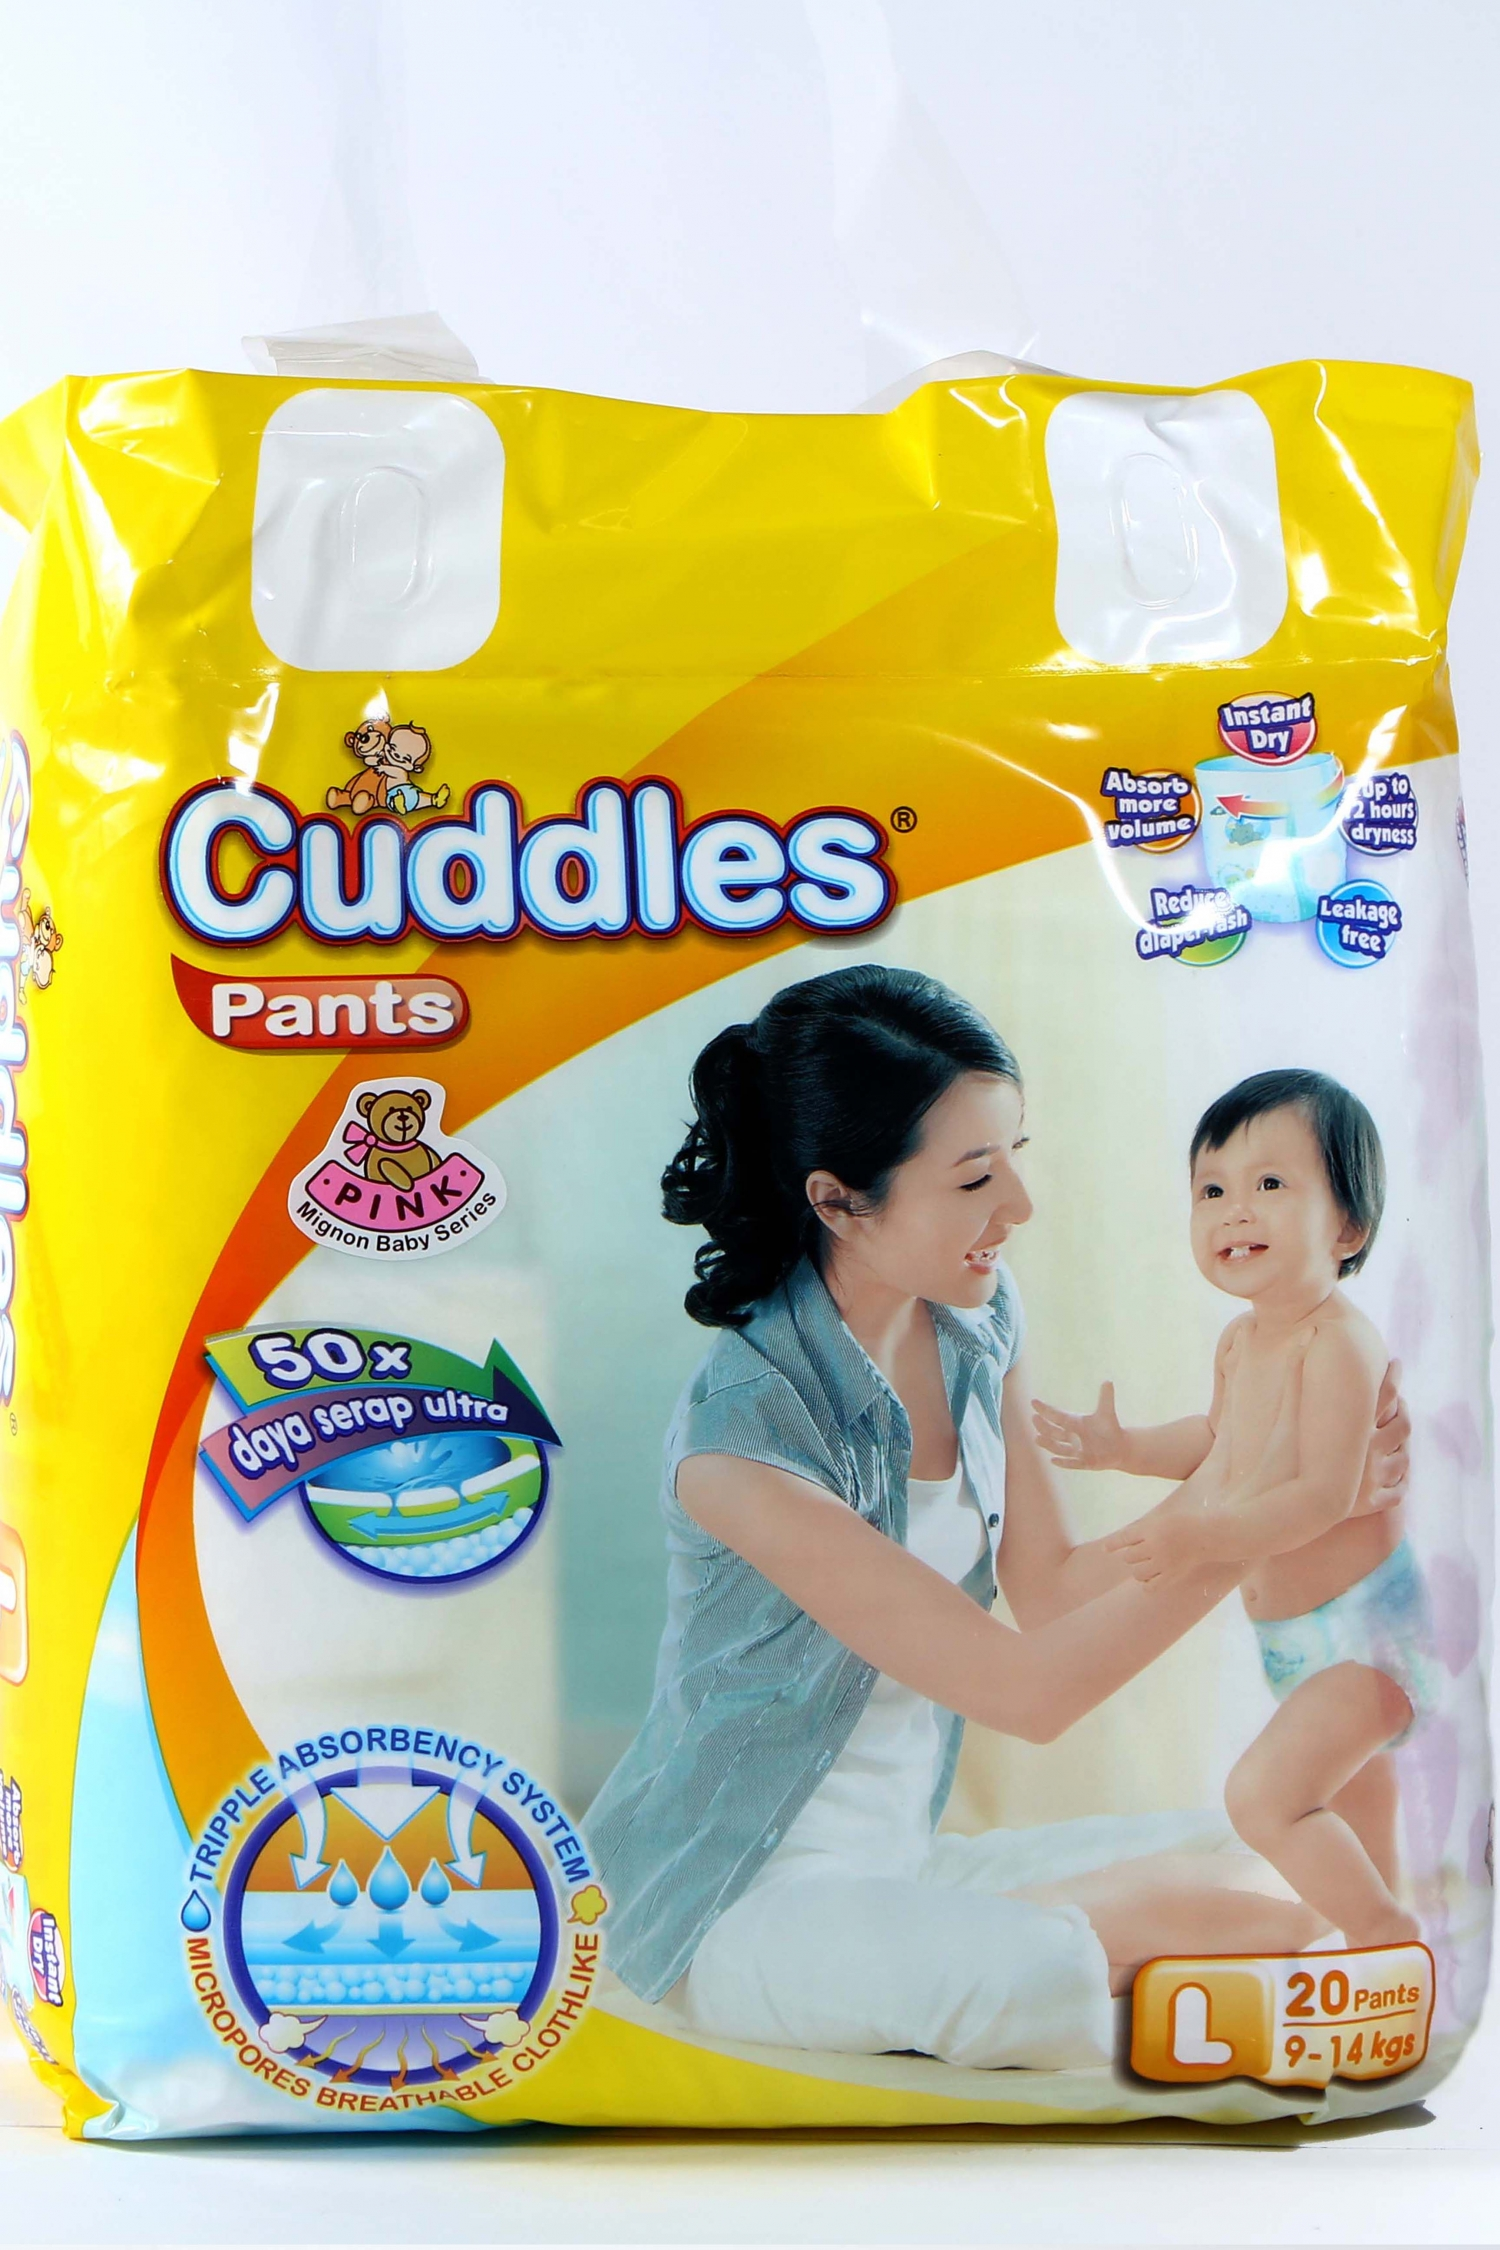 Cuddles diapers